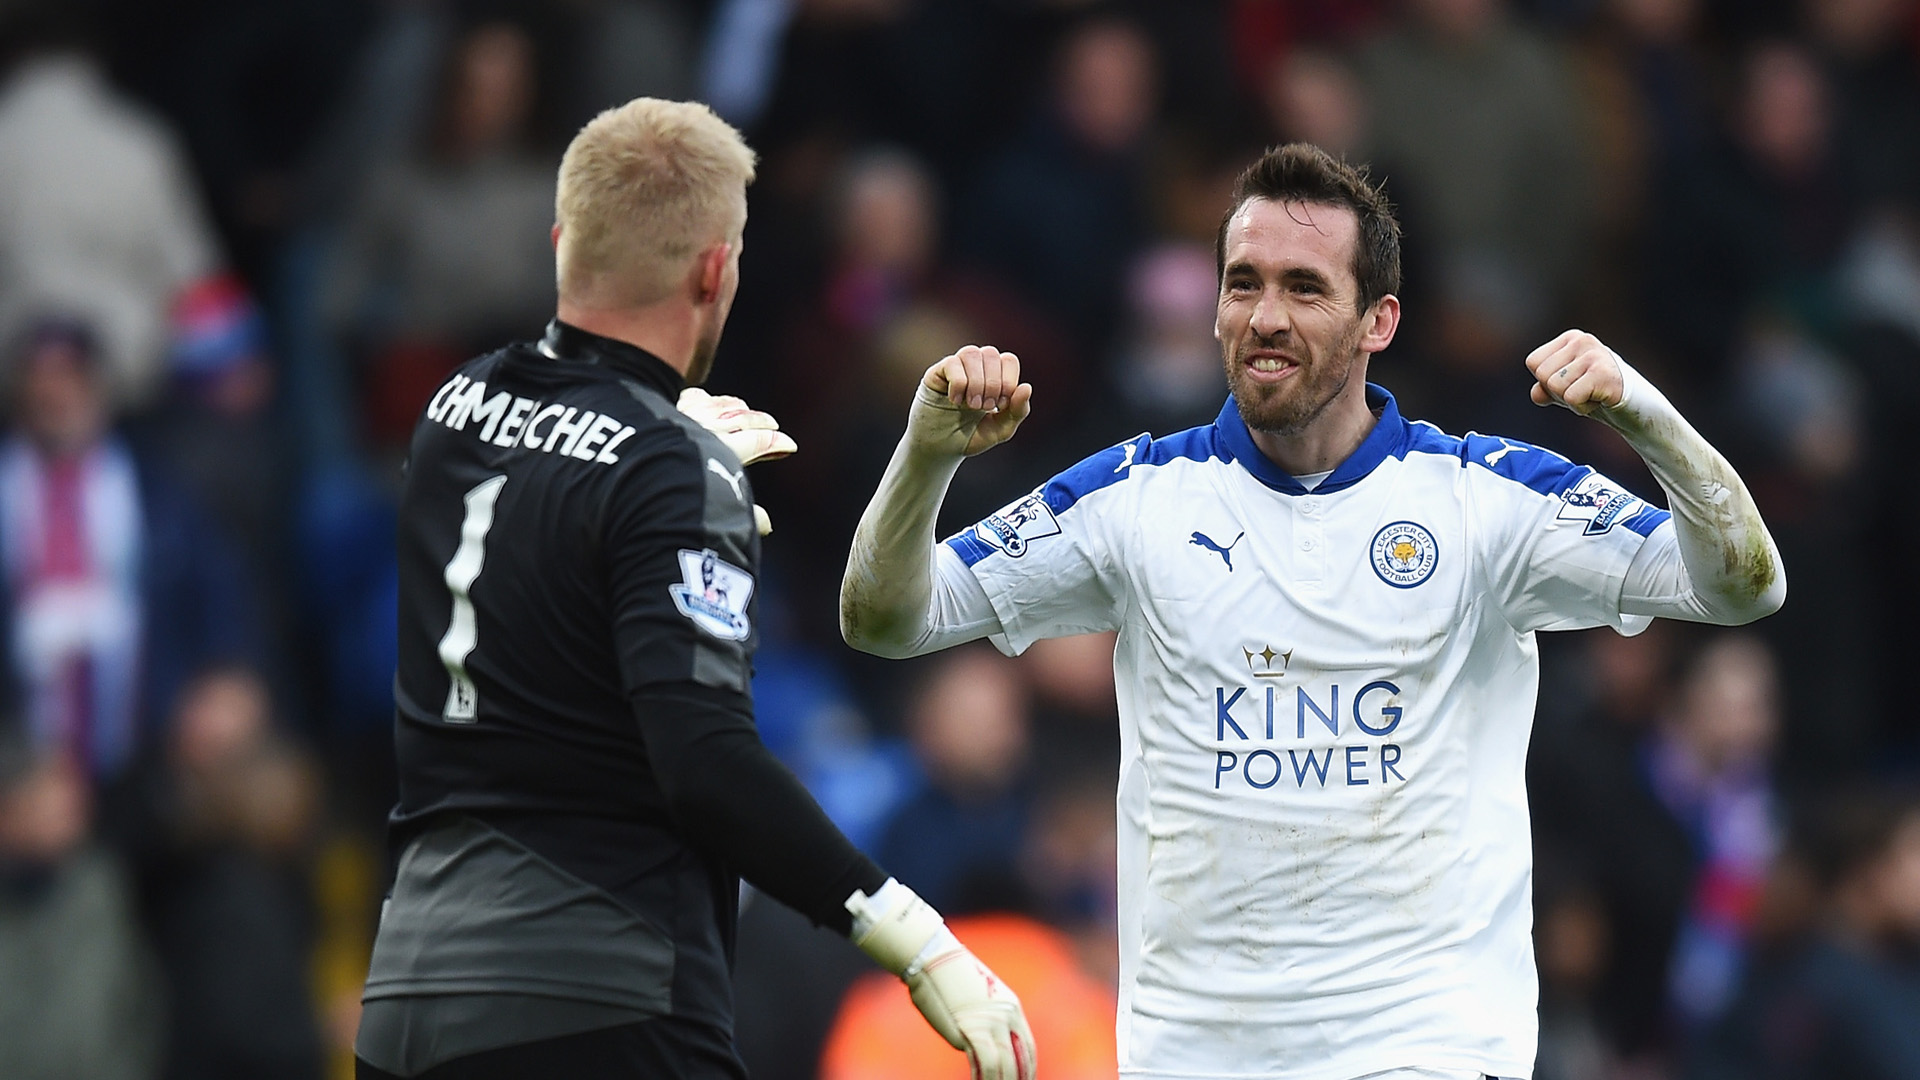 LONDON, ENGLAND - MARCH 19: Kasper Schmeichel (L) and Christian Fuchs (R) of Leicester City celebrate their 1-0 win in the Barclays Premier League match between Crystal Palace and Leicester City at Selhurst Park on March 19, 2016 in London, United Kingdom. (Photo by Michael Regan/Getty Images)